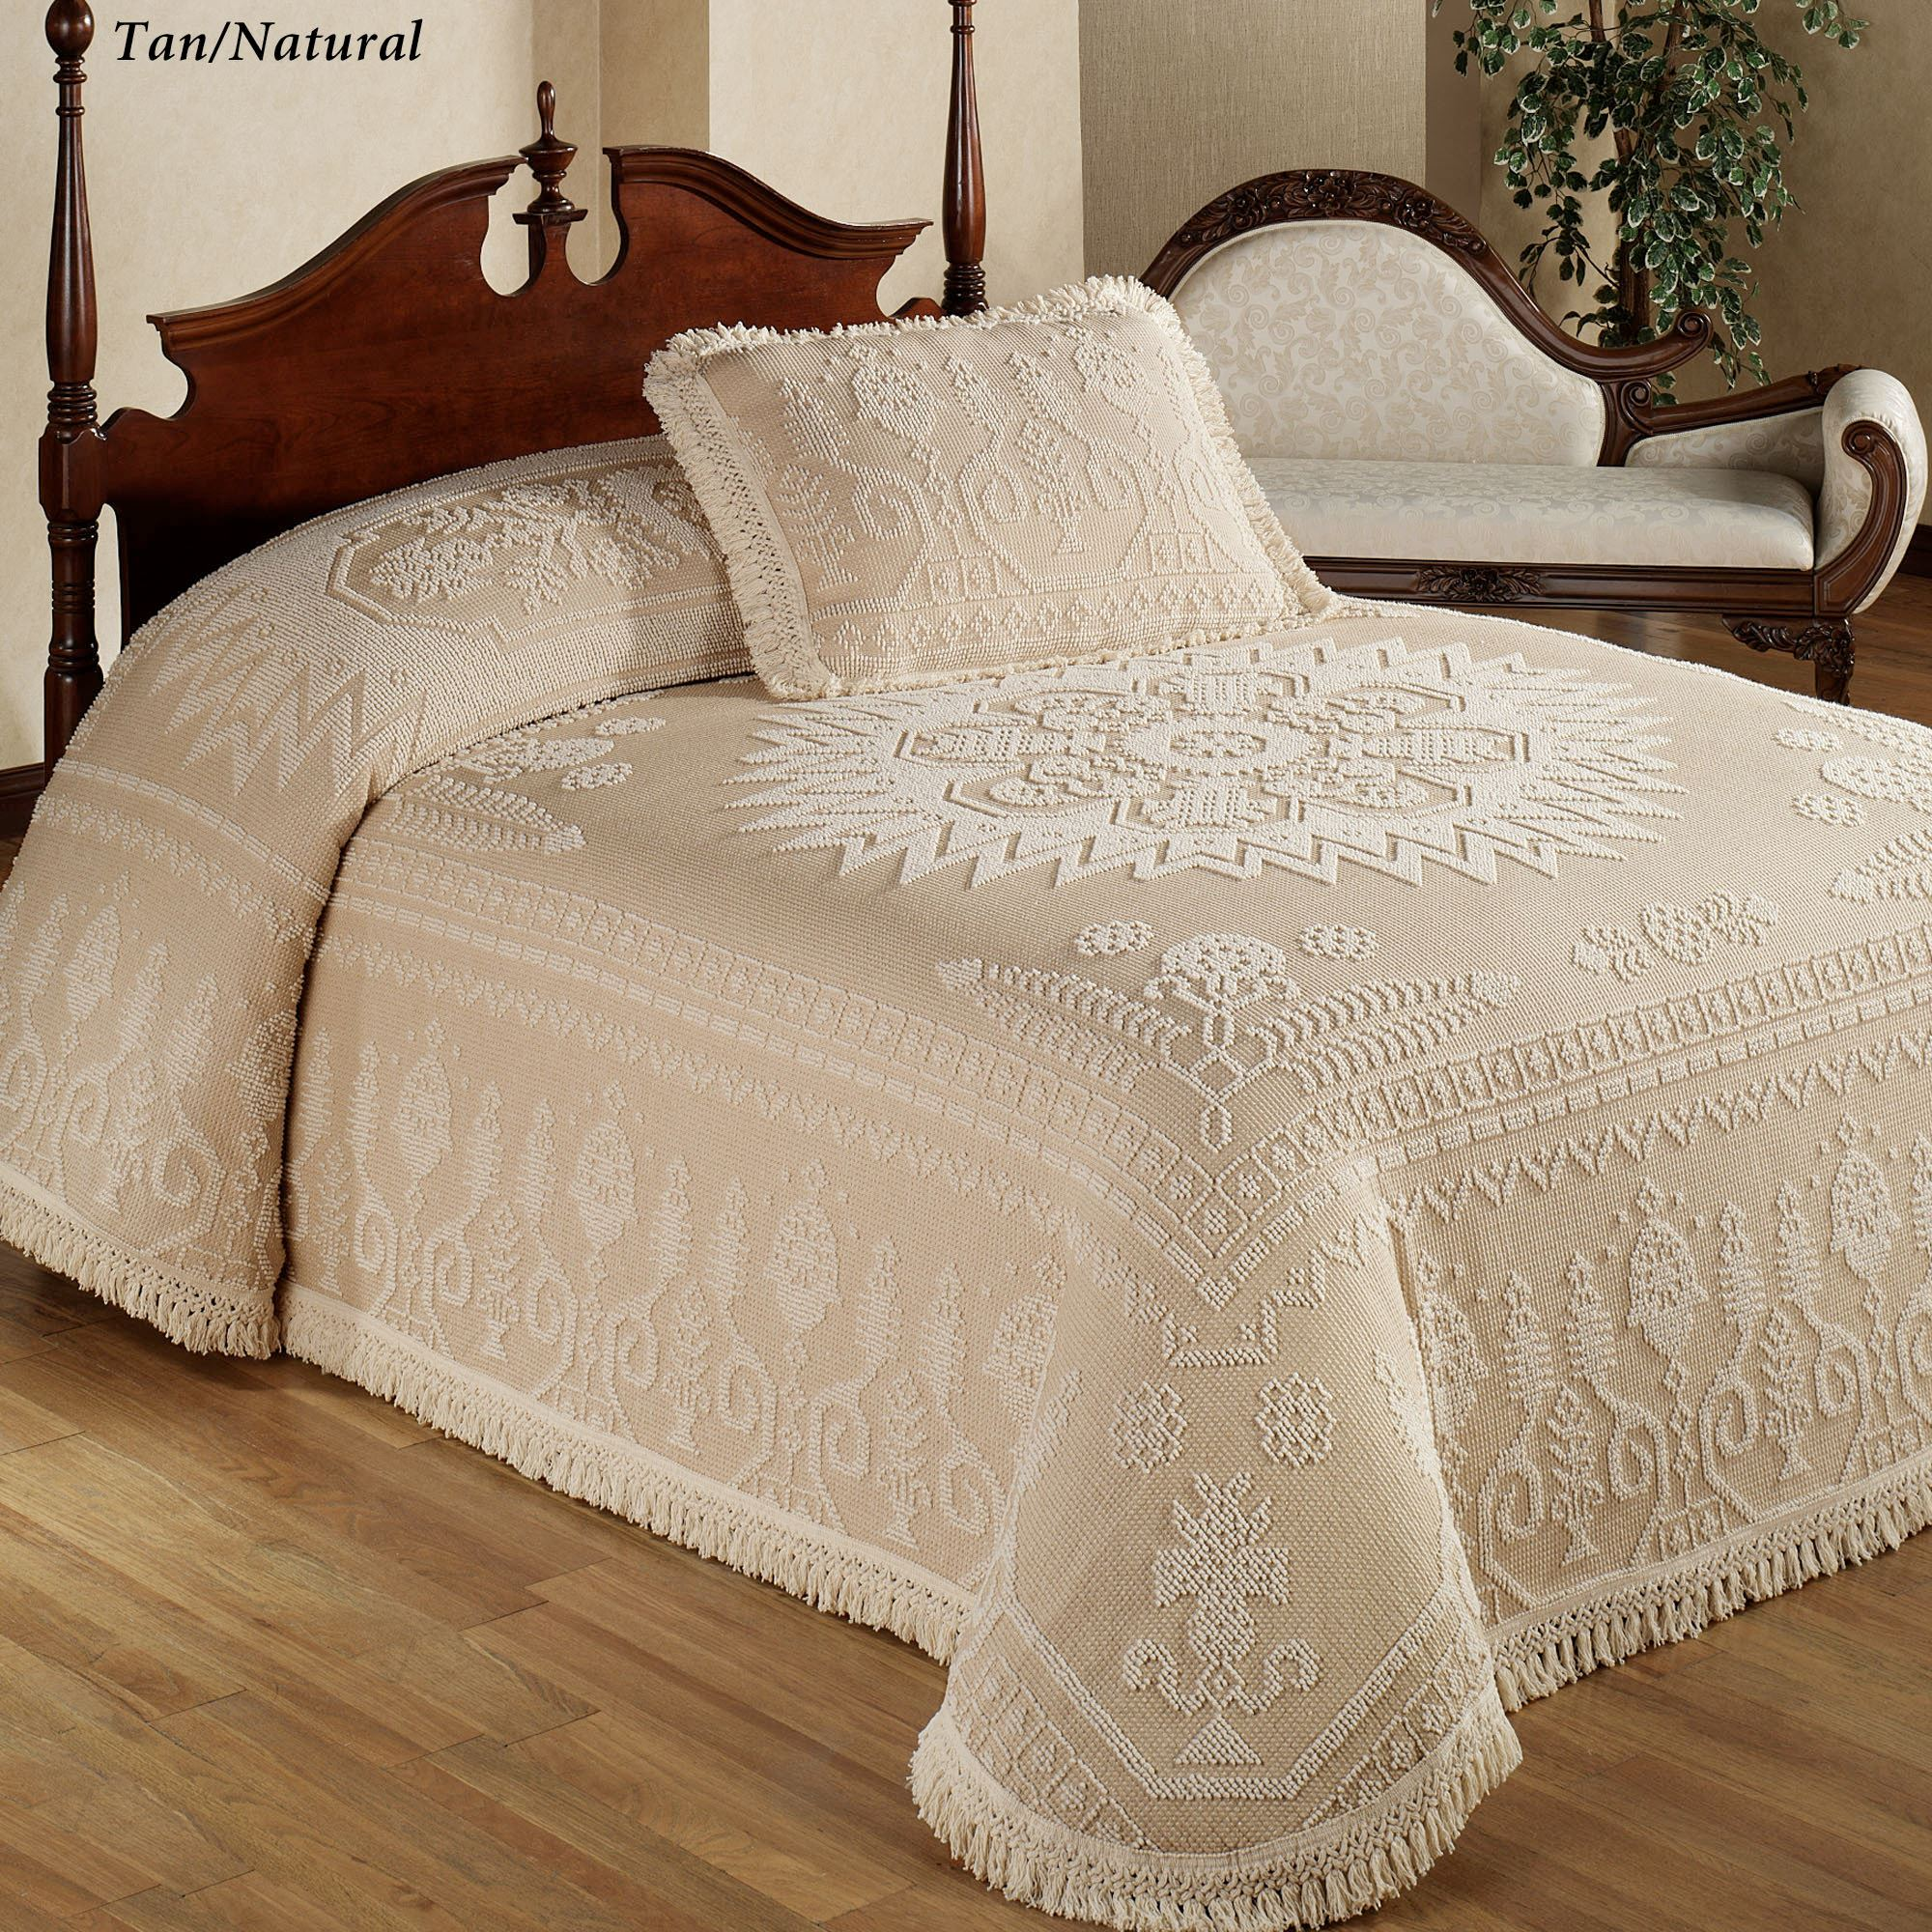 Spirit Of America Candlewick Bedspread Bedding